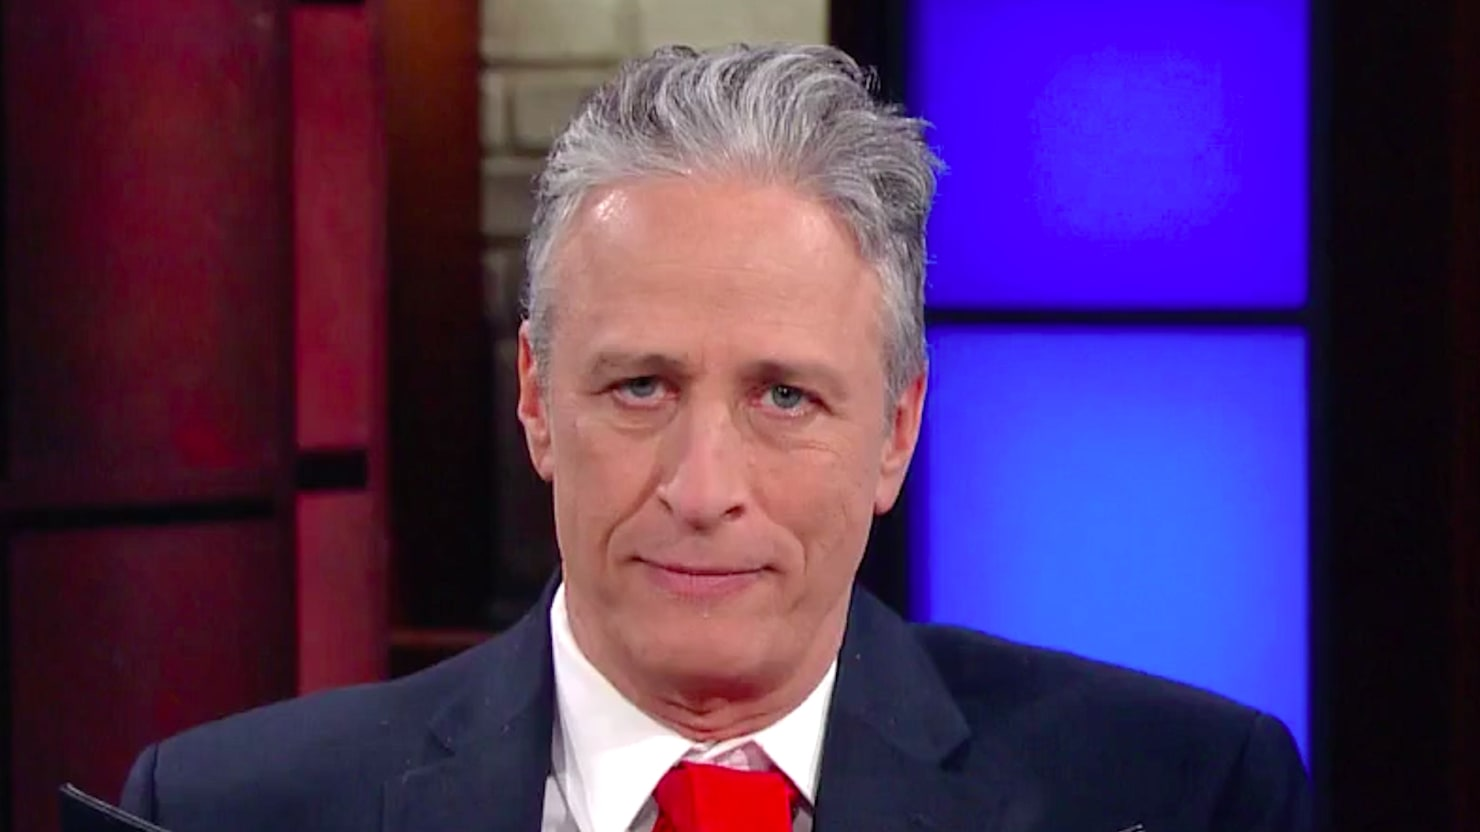 Jon Stewart Rips Apart President Trump: 'The New Official Language of the United States Is Bullshit'